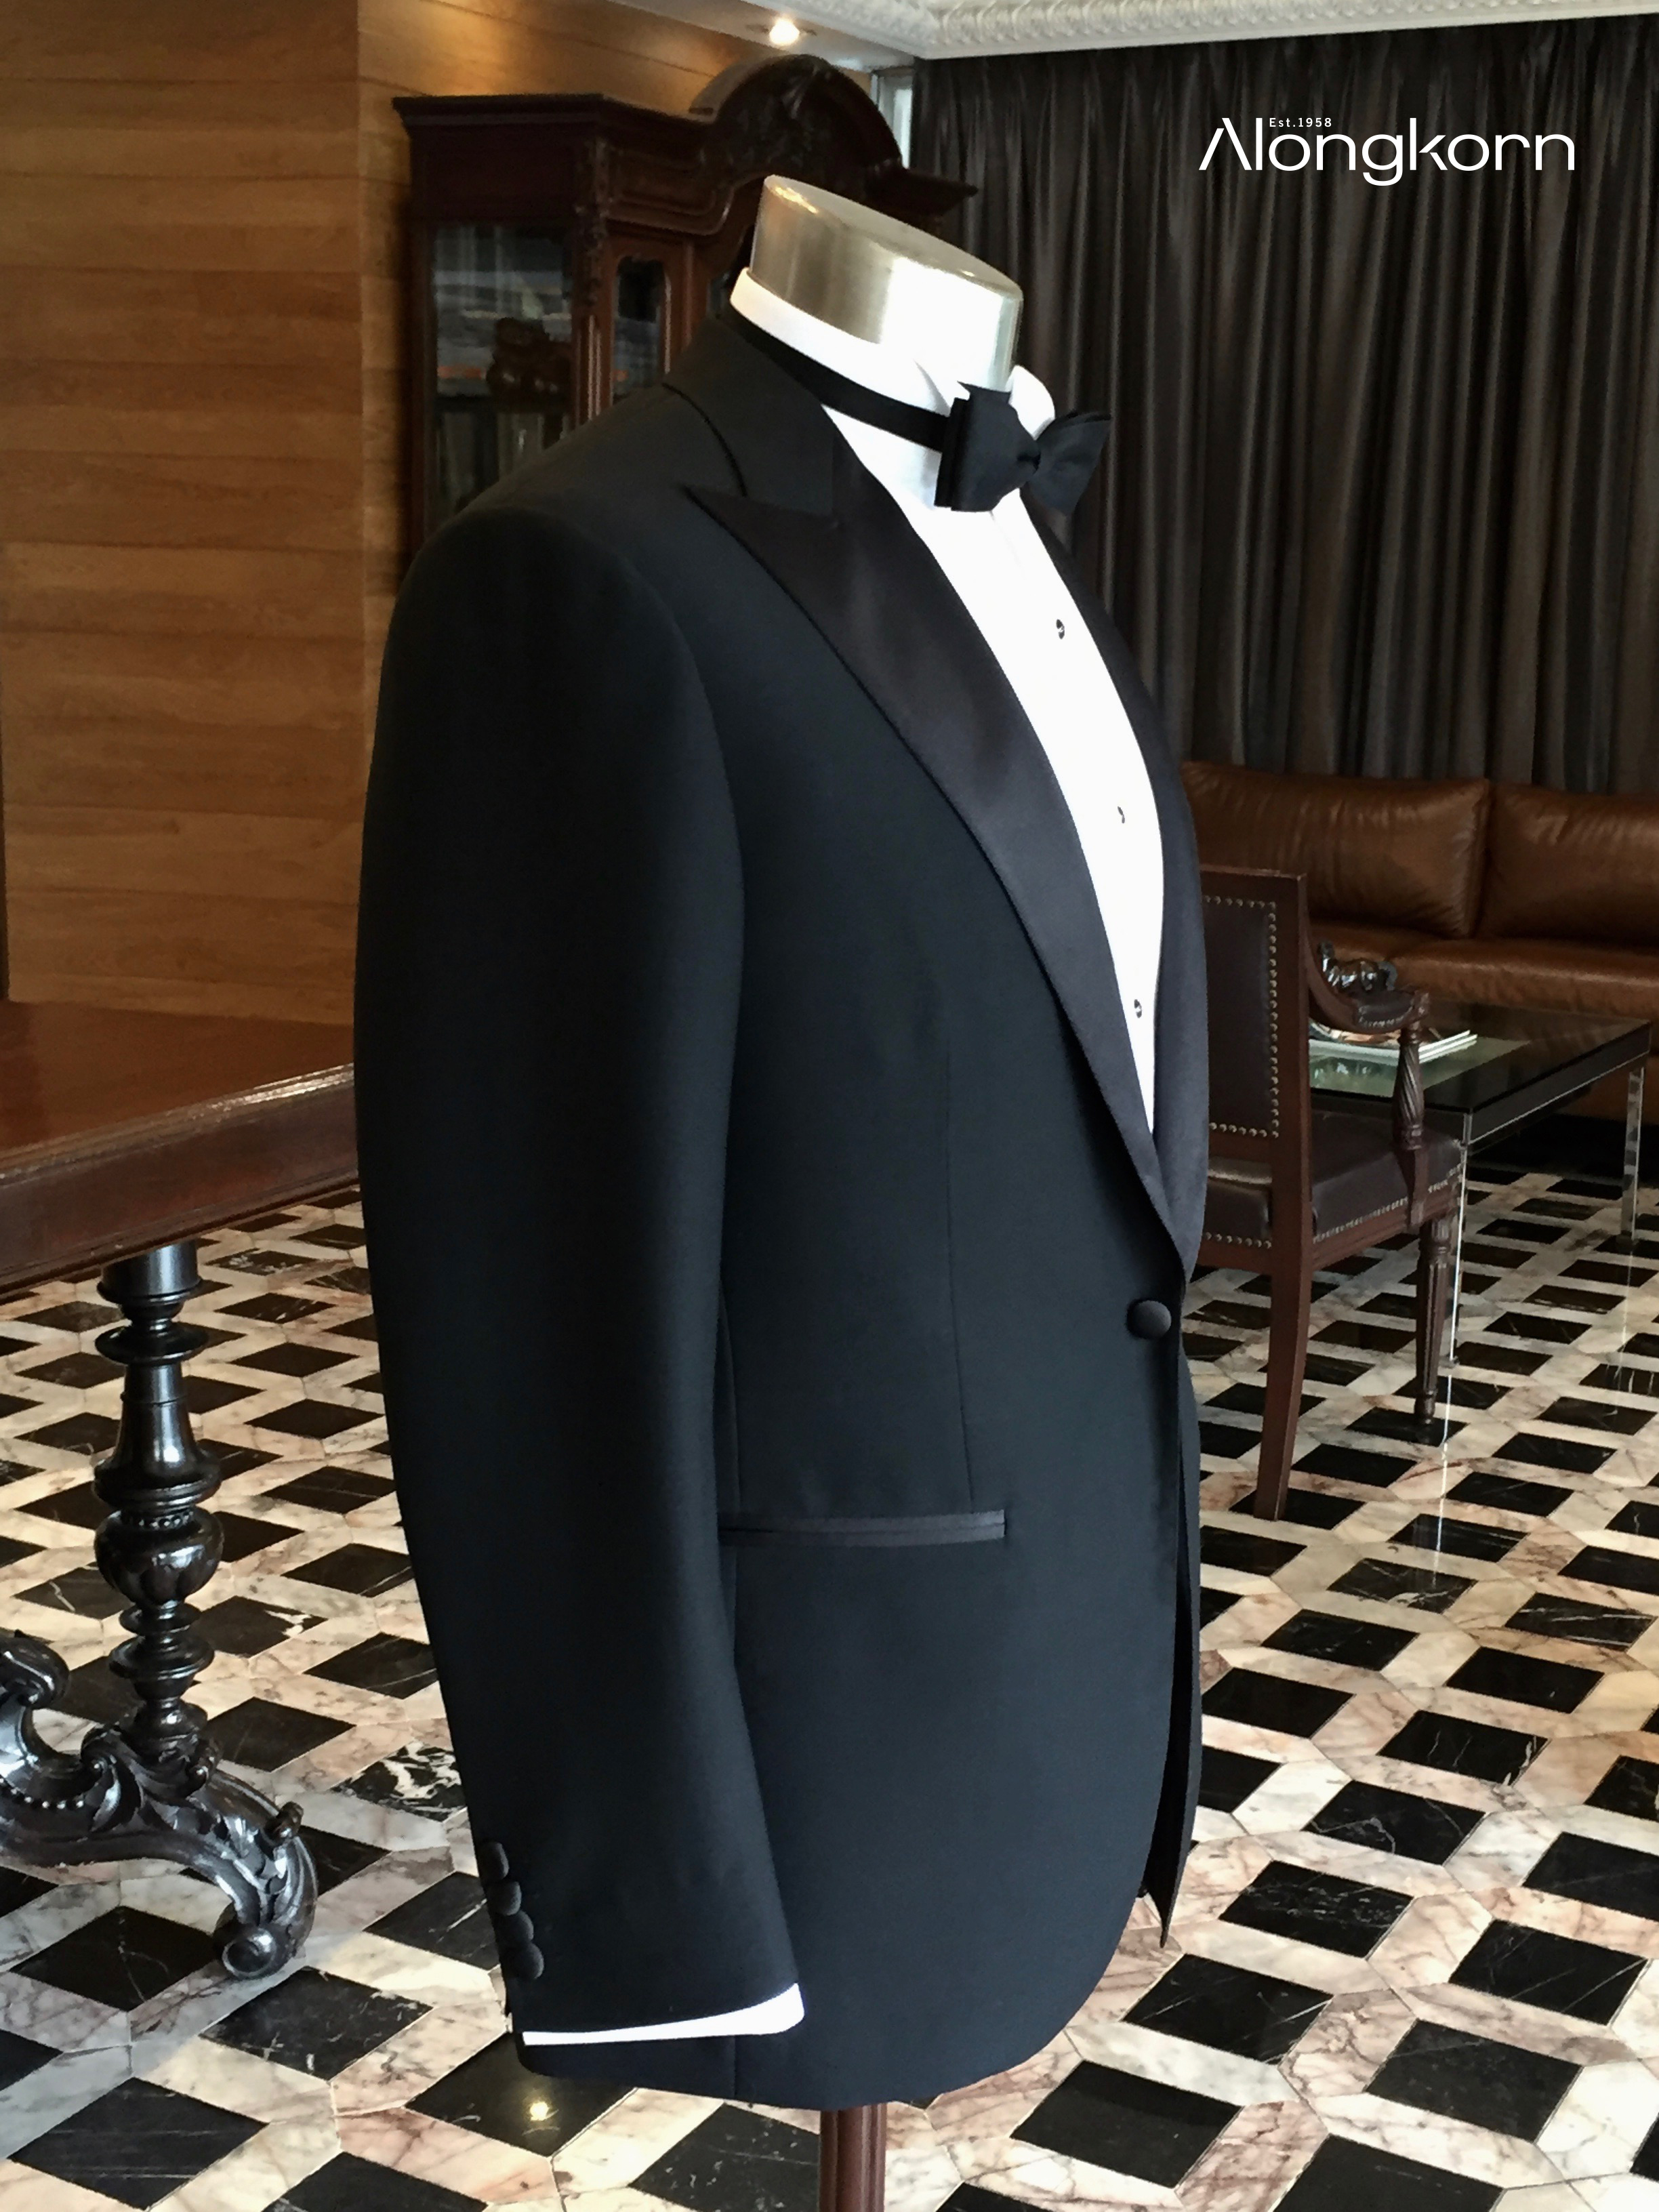 Wool-Blended Black Tie - Suit : From Bt.29,500Tuxedo Shirt : From Bt.5,500